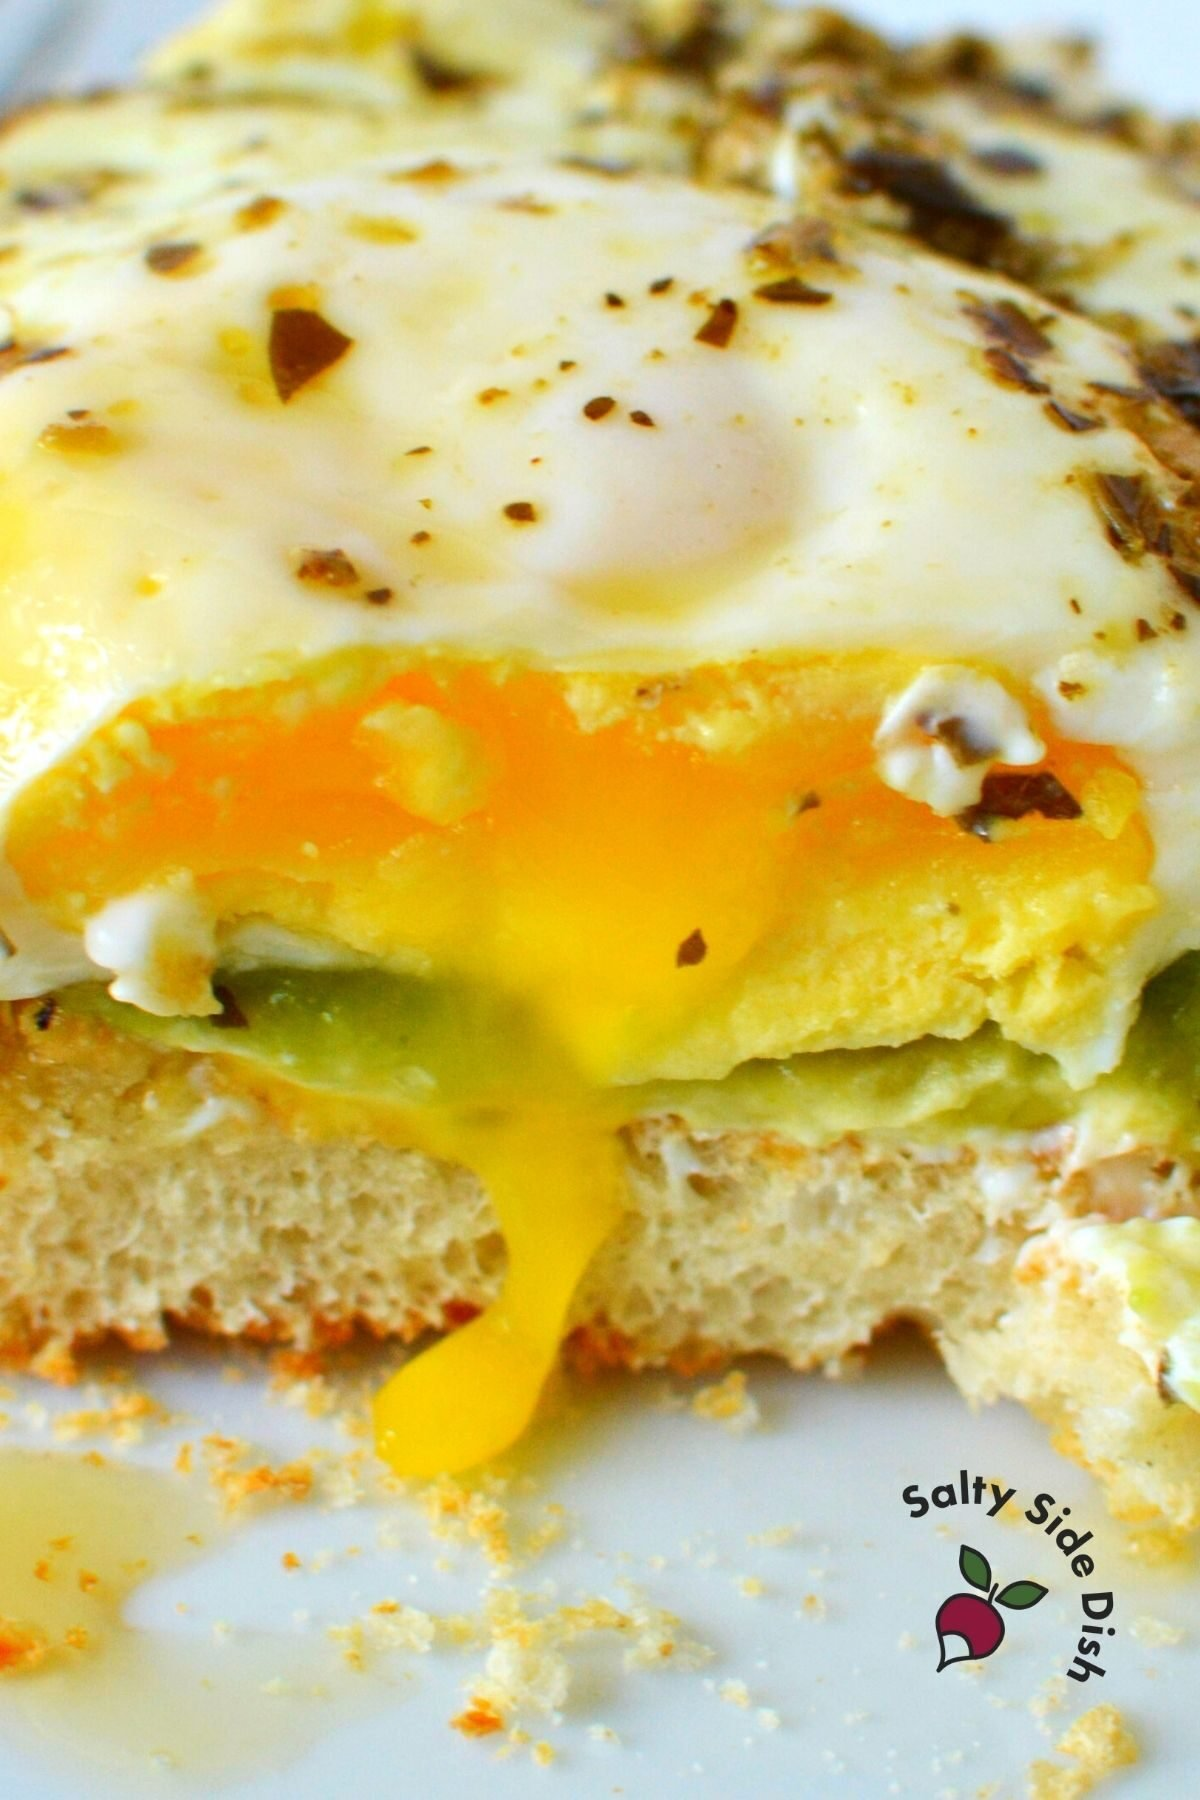 runny eggs on a sandwich with pesto and avocado.